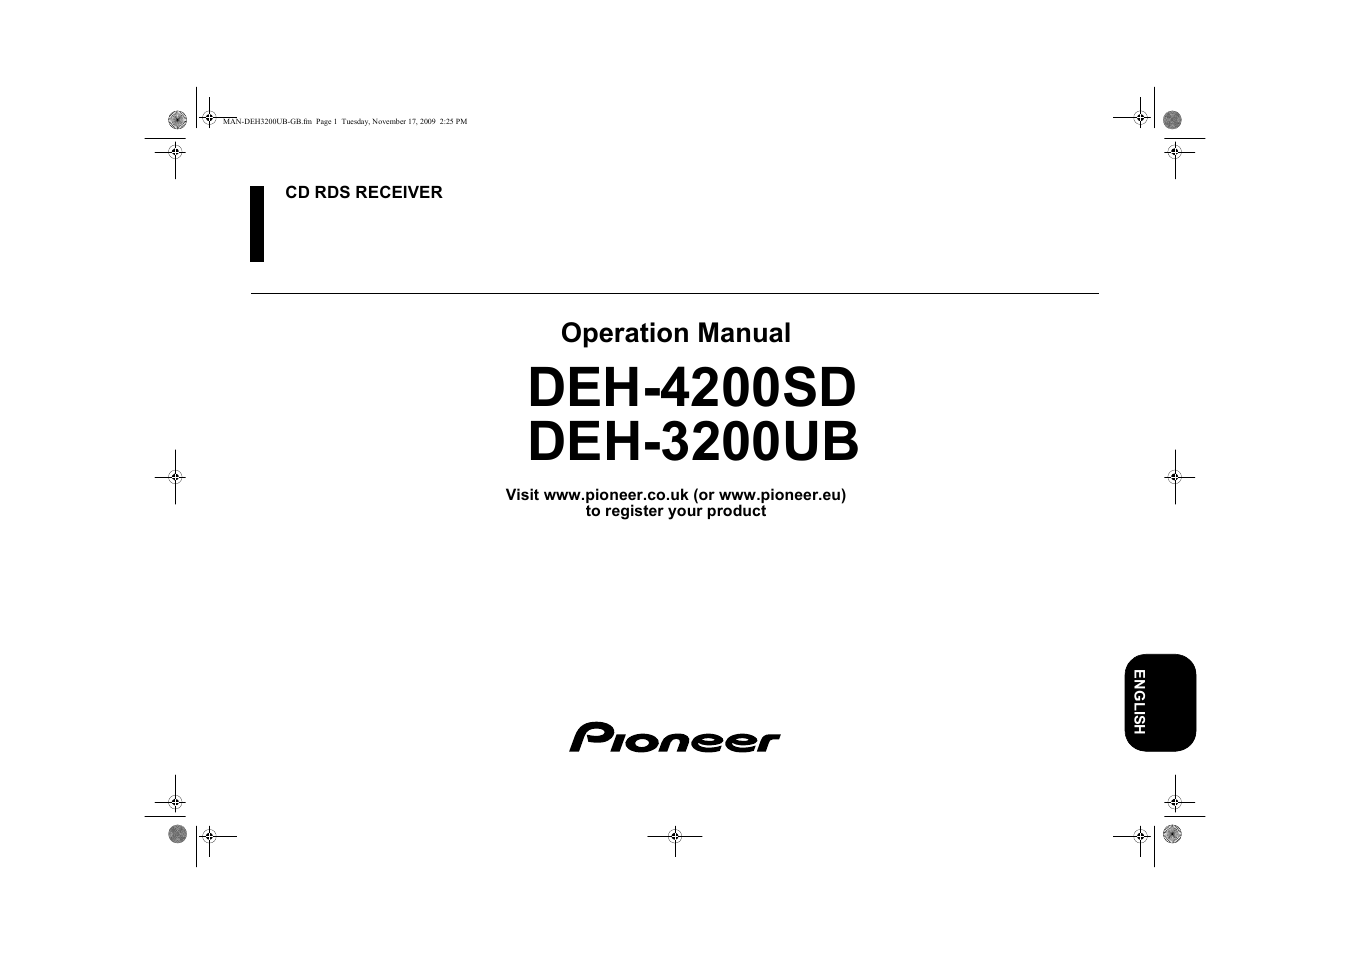 hight resolution of pioneer deh 3200ub user manual 28 pages also for deh 4200sd rh manualsdir com pioneer deh 3200 wiring diagram